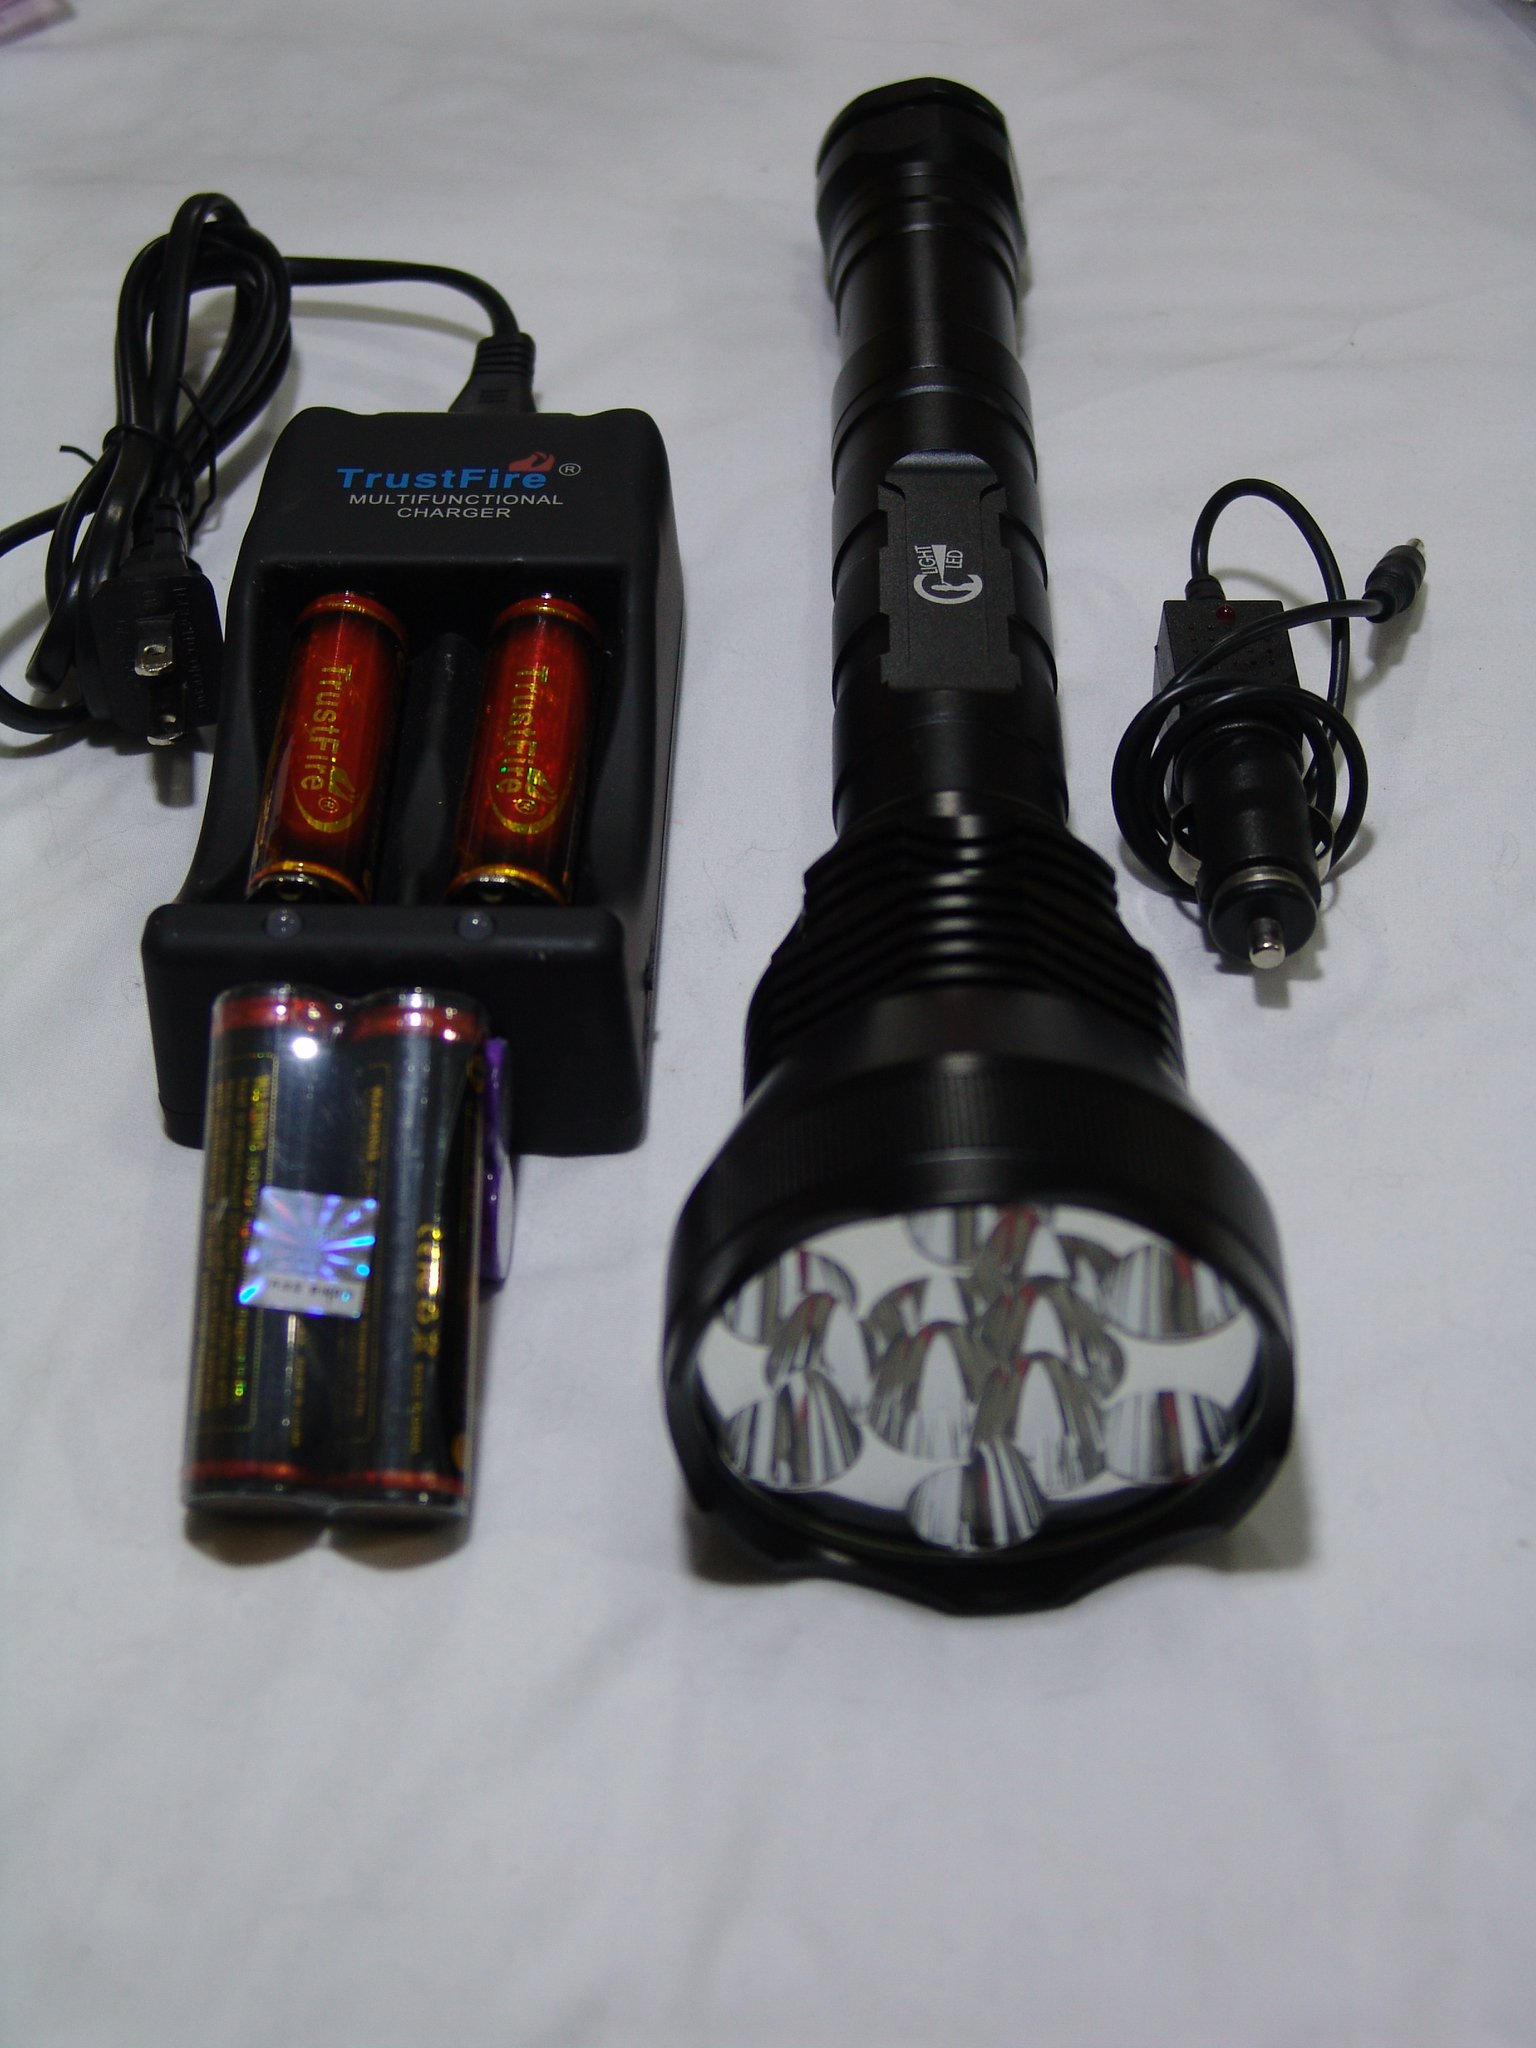 Mouse over image to zoom Have one to sell? Sell it yourself Details about C Light LED 12X Cree T6 13,000 Lumen Flashlight + TrustFire 3X 18650 & 006 Smart Charger